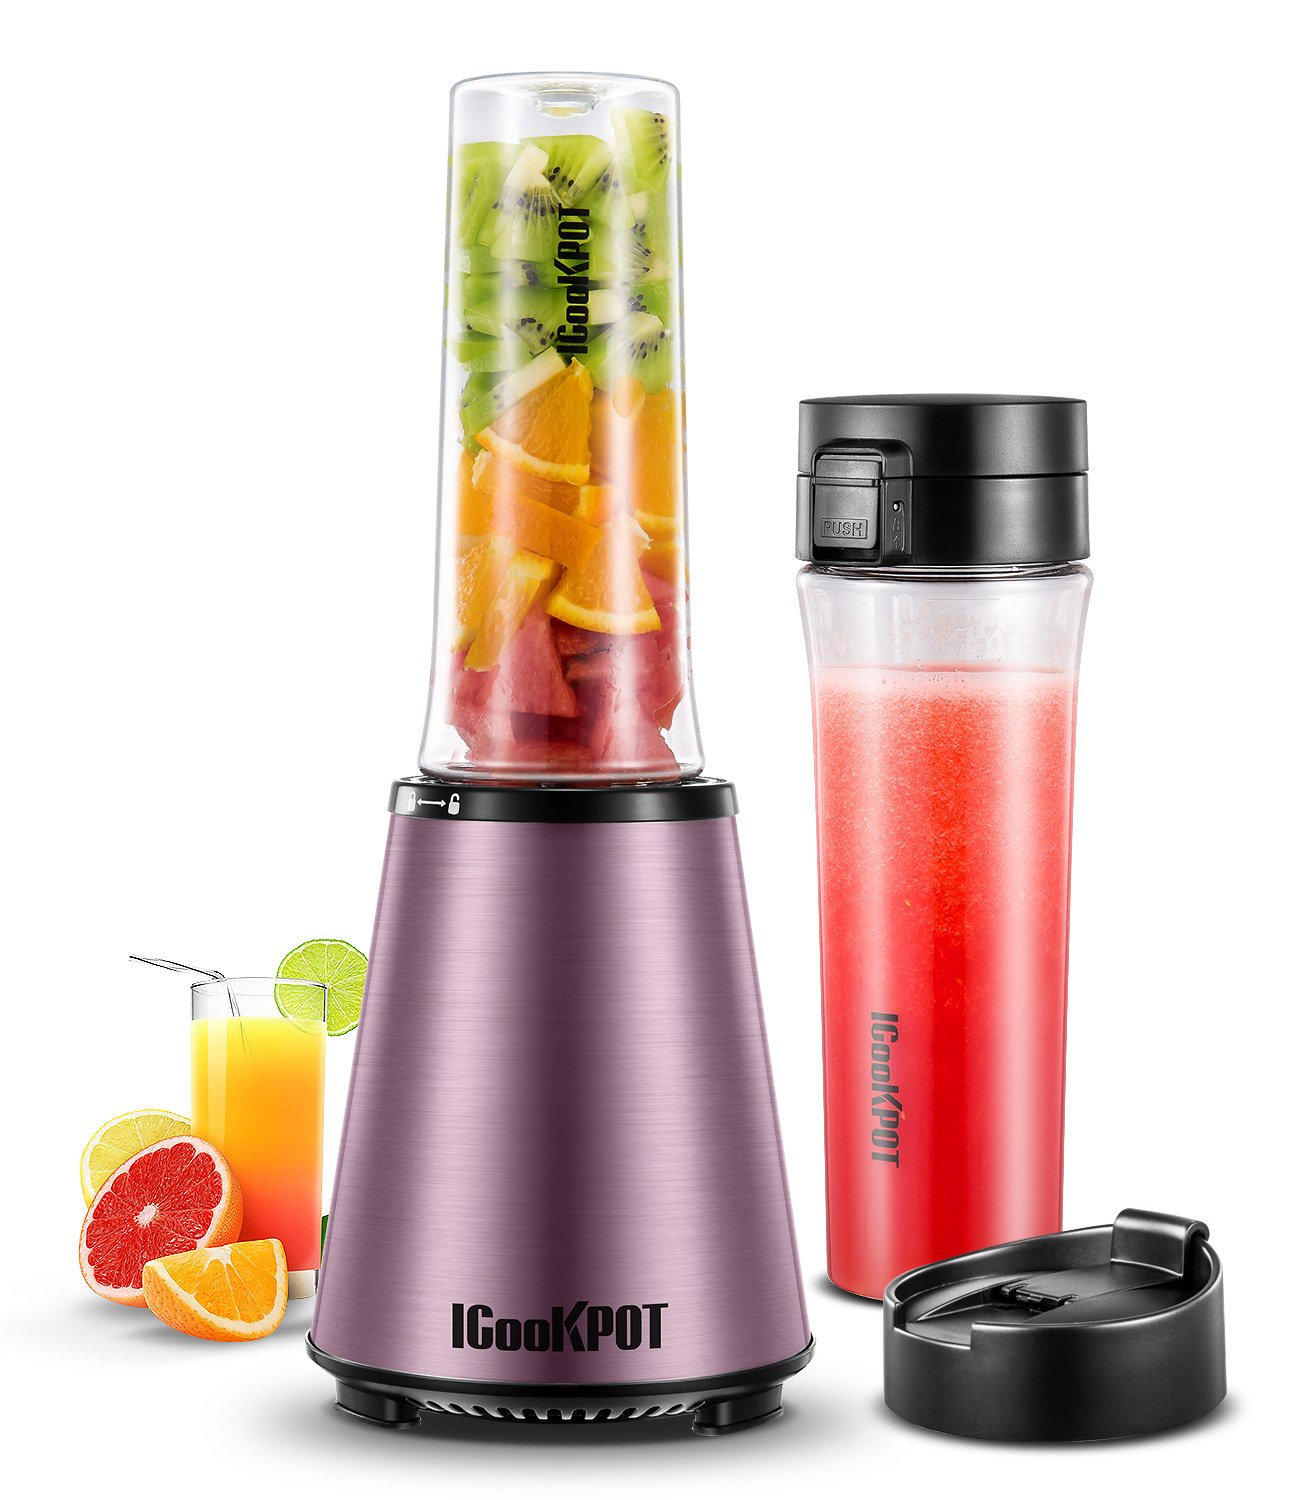 ICOOKPOT Smoothie Blender Personal Blender for Shakes and Smoothies with 2 X 18 oz BPA-Free Portable Sports Bottles and Travel Lid Frozen Fruit Vegetable Juice Maker, 300W Rose Gold by ICOOKPOT